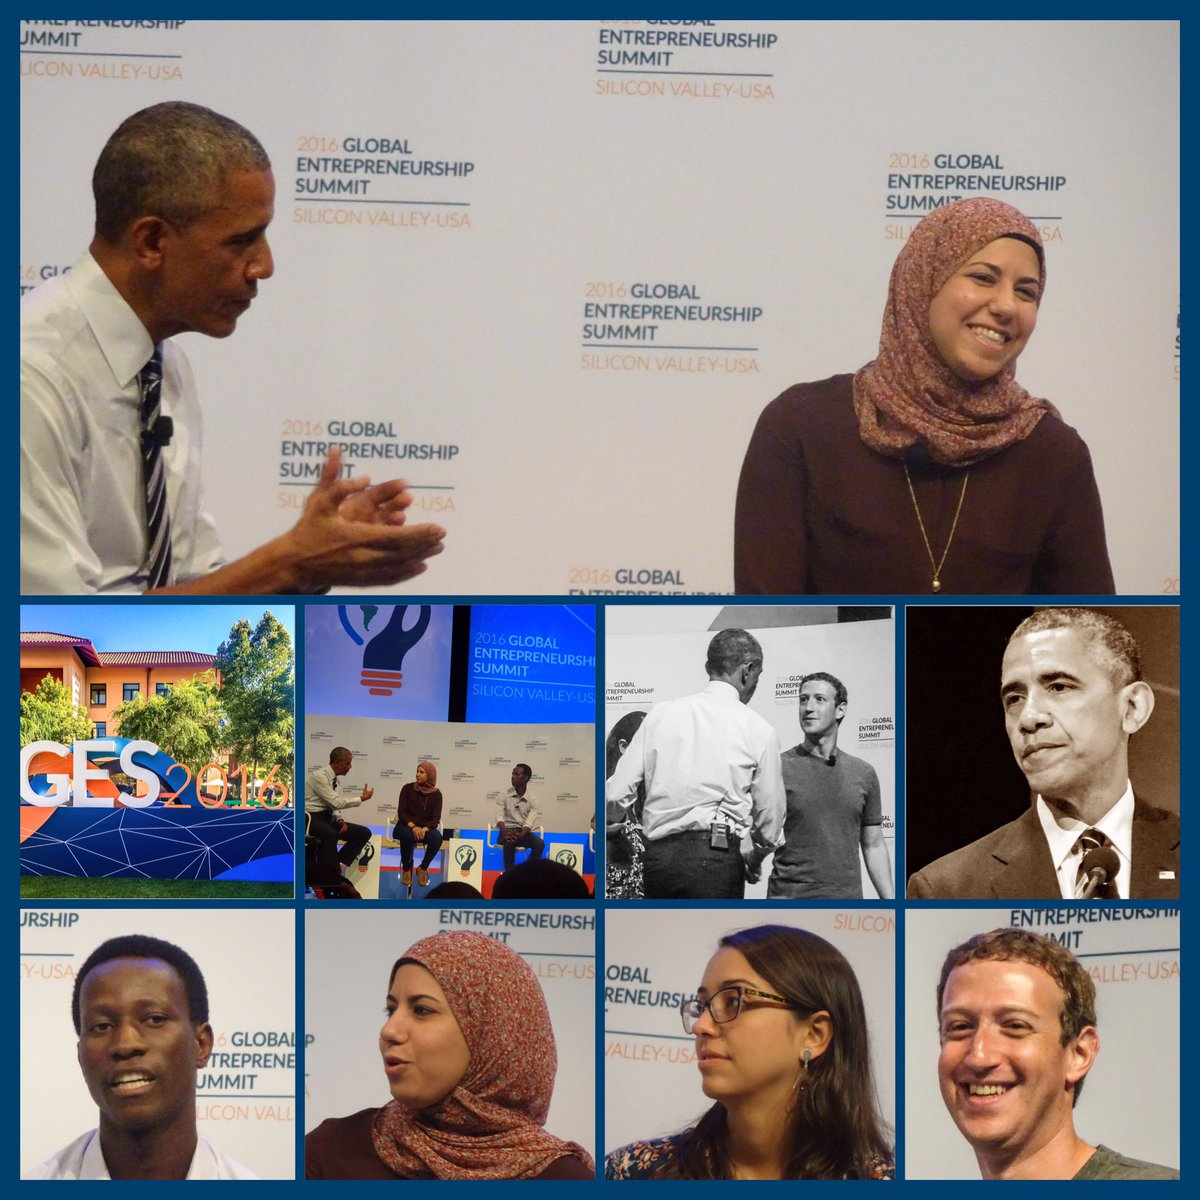 #GES2016 @POTUS moderates panel with @finkd @MaiMedhat @nzibosco @mcostach @ges2016 ! https://t.co/syg13WTRBr